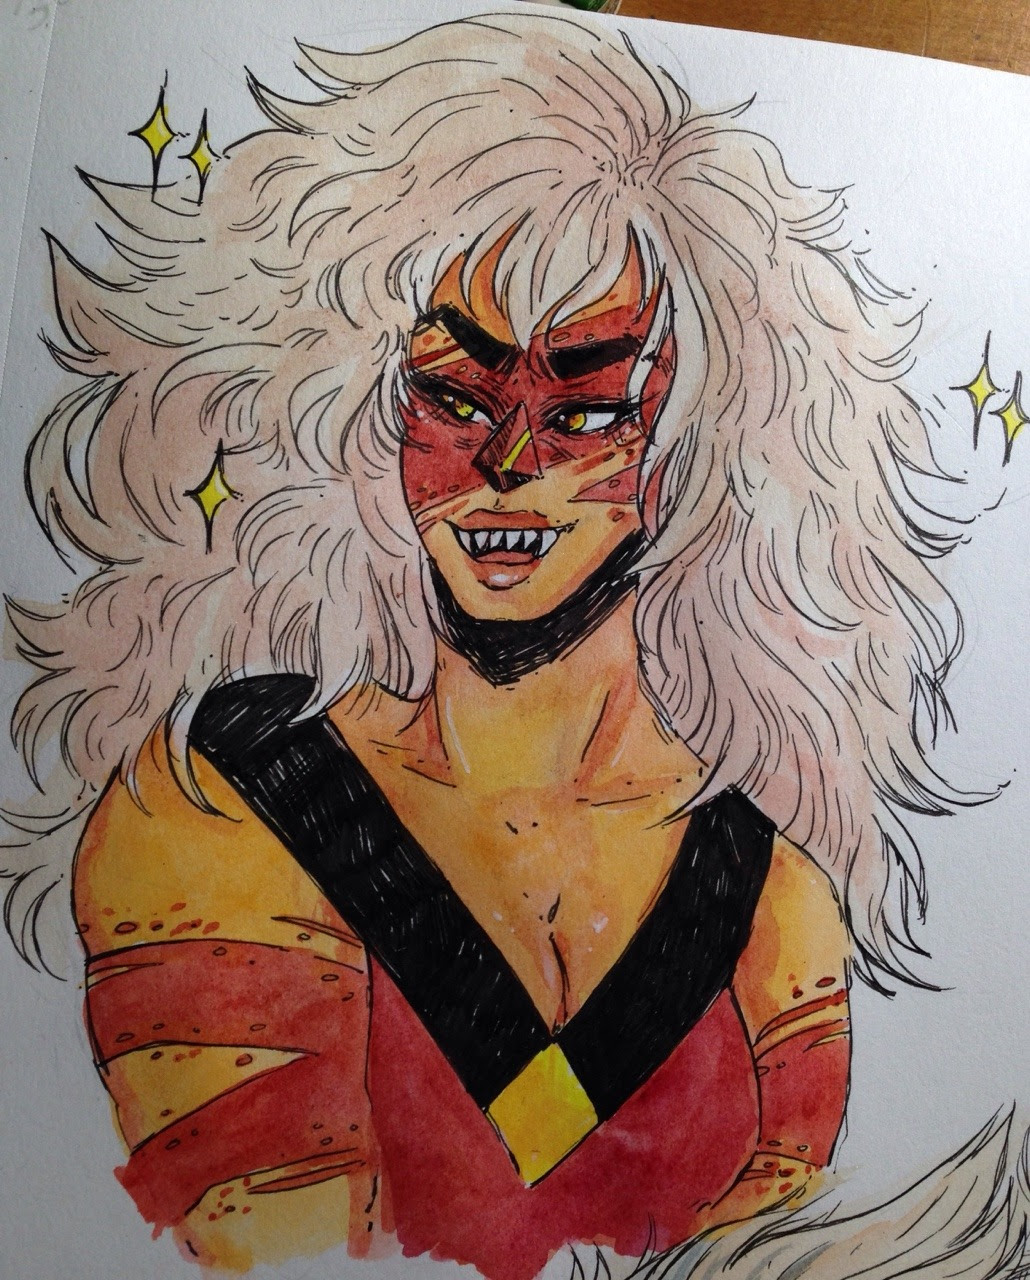 im feeling terrible!! but im going to keep drawing jasper cause shes all i got and ive got some bad art block to get through